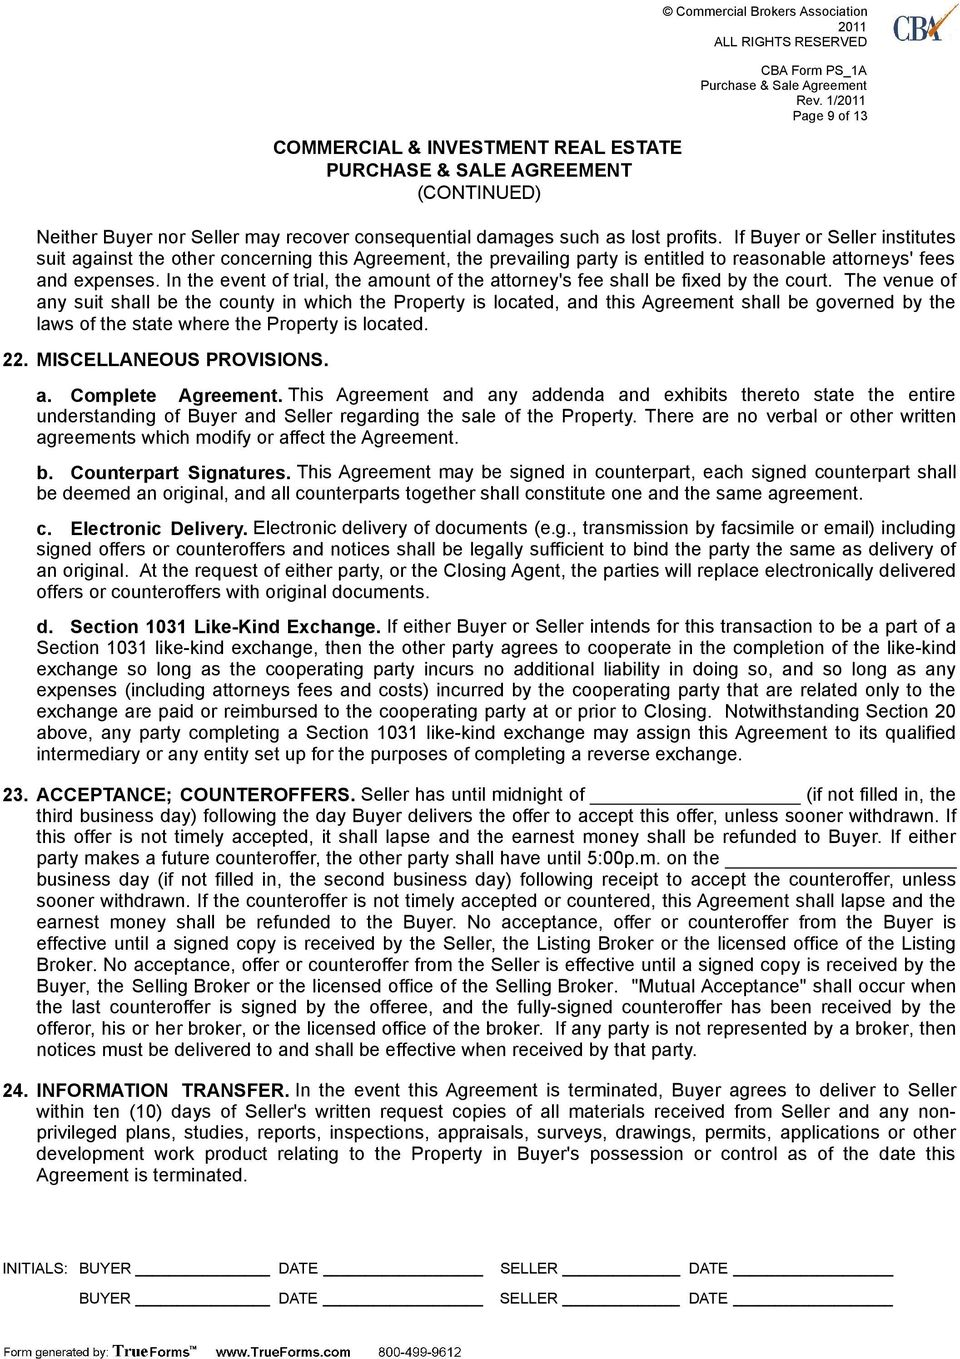 Commercial Investment Real Estate Purchase Sale Agreement Pdf